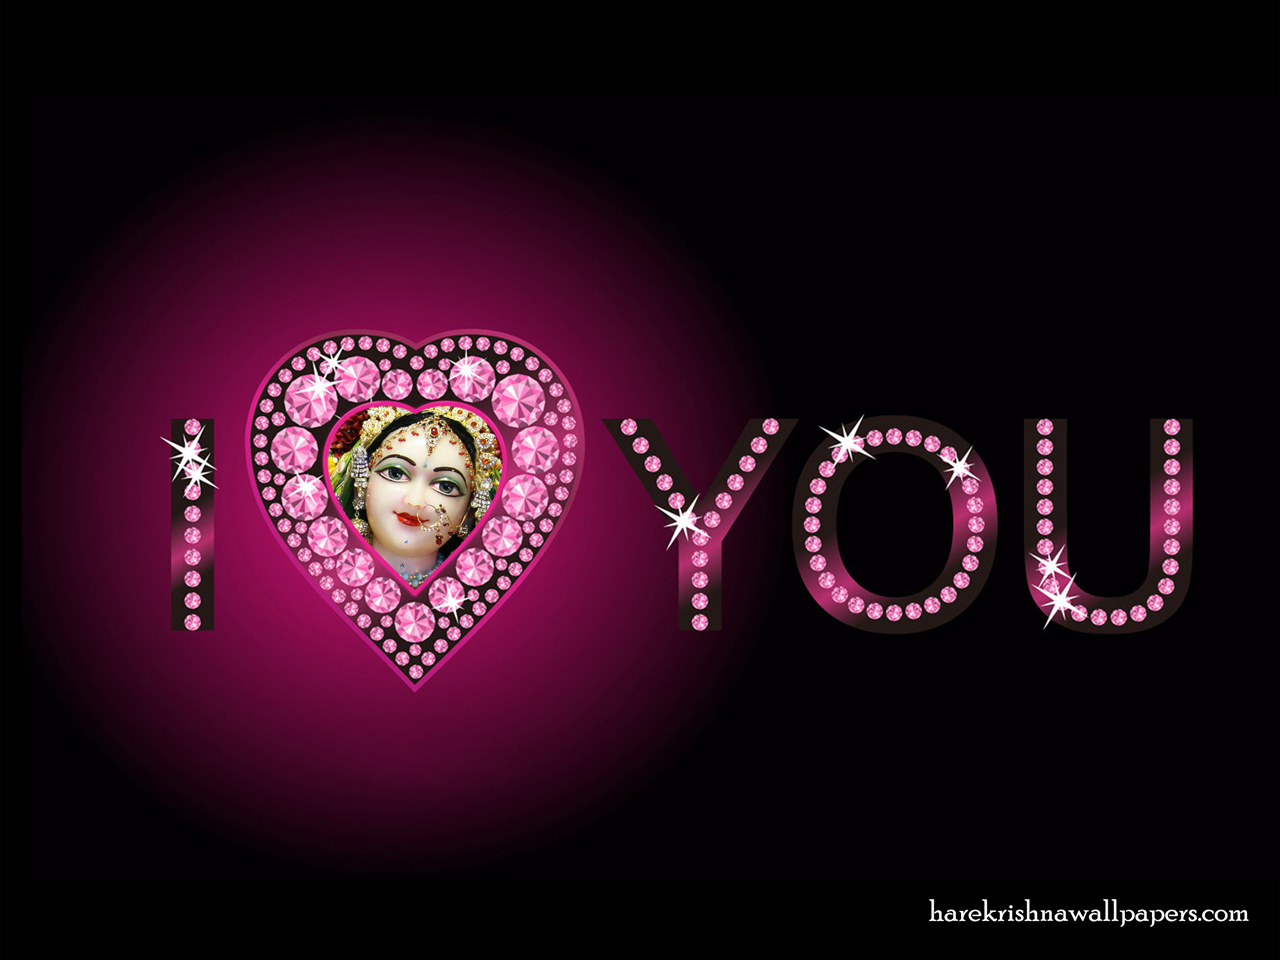 I Love You Radharani Wallpaper (015) Size 1280x960 Download